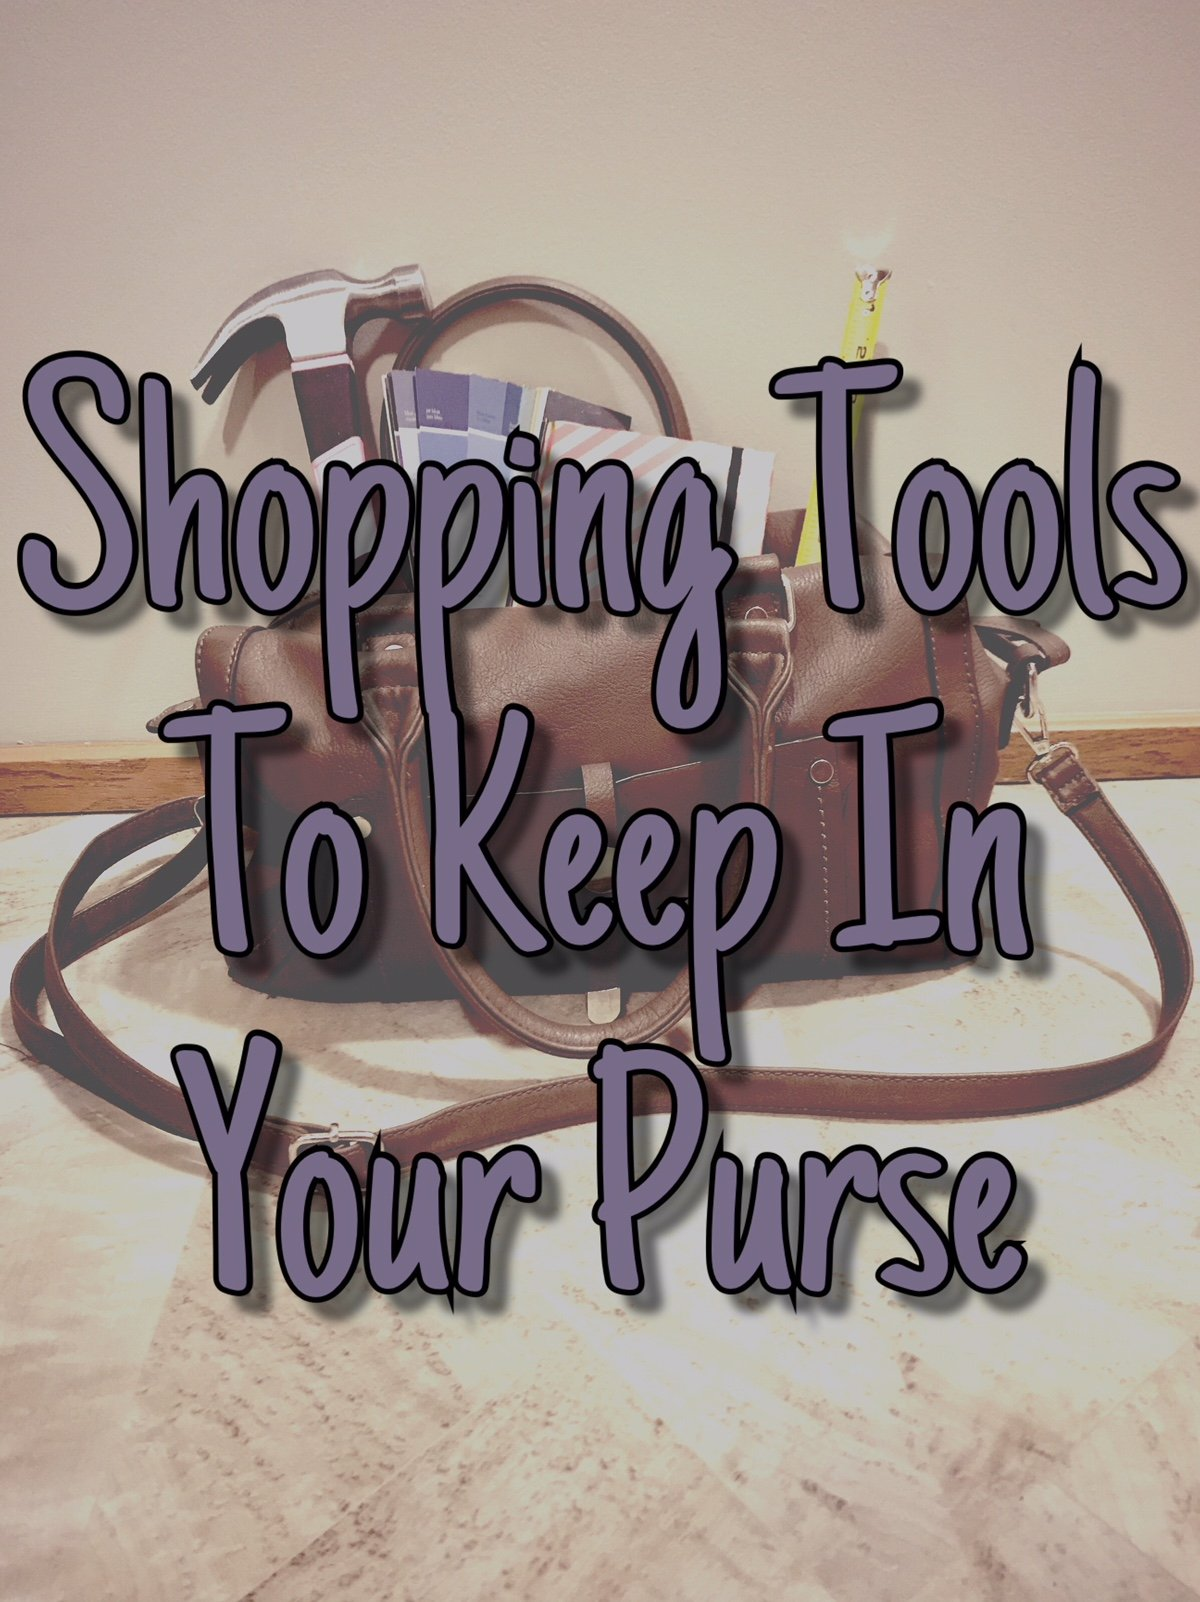 Shopping Tools To Keep In Your Purse